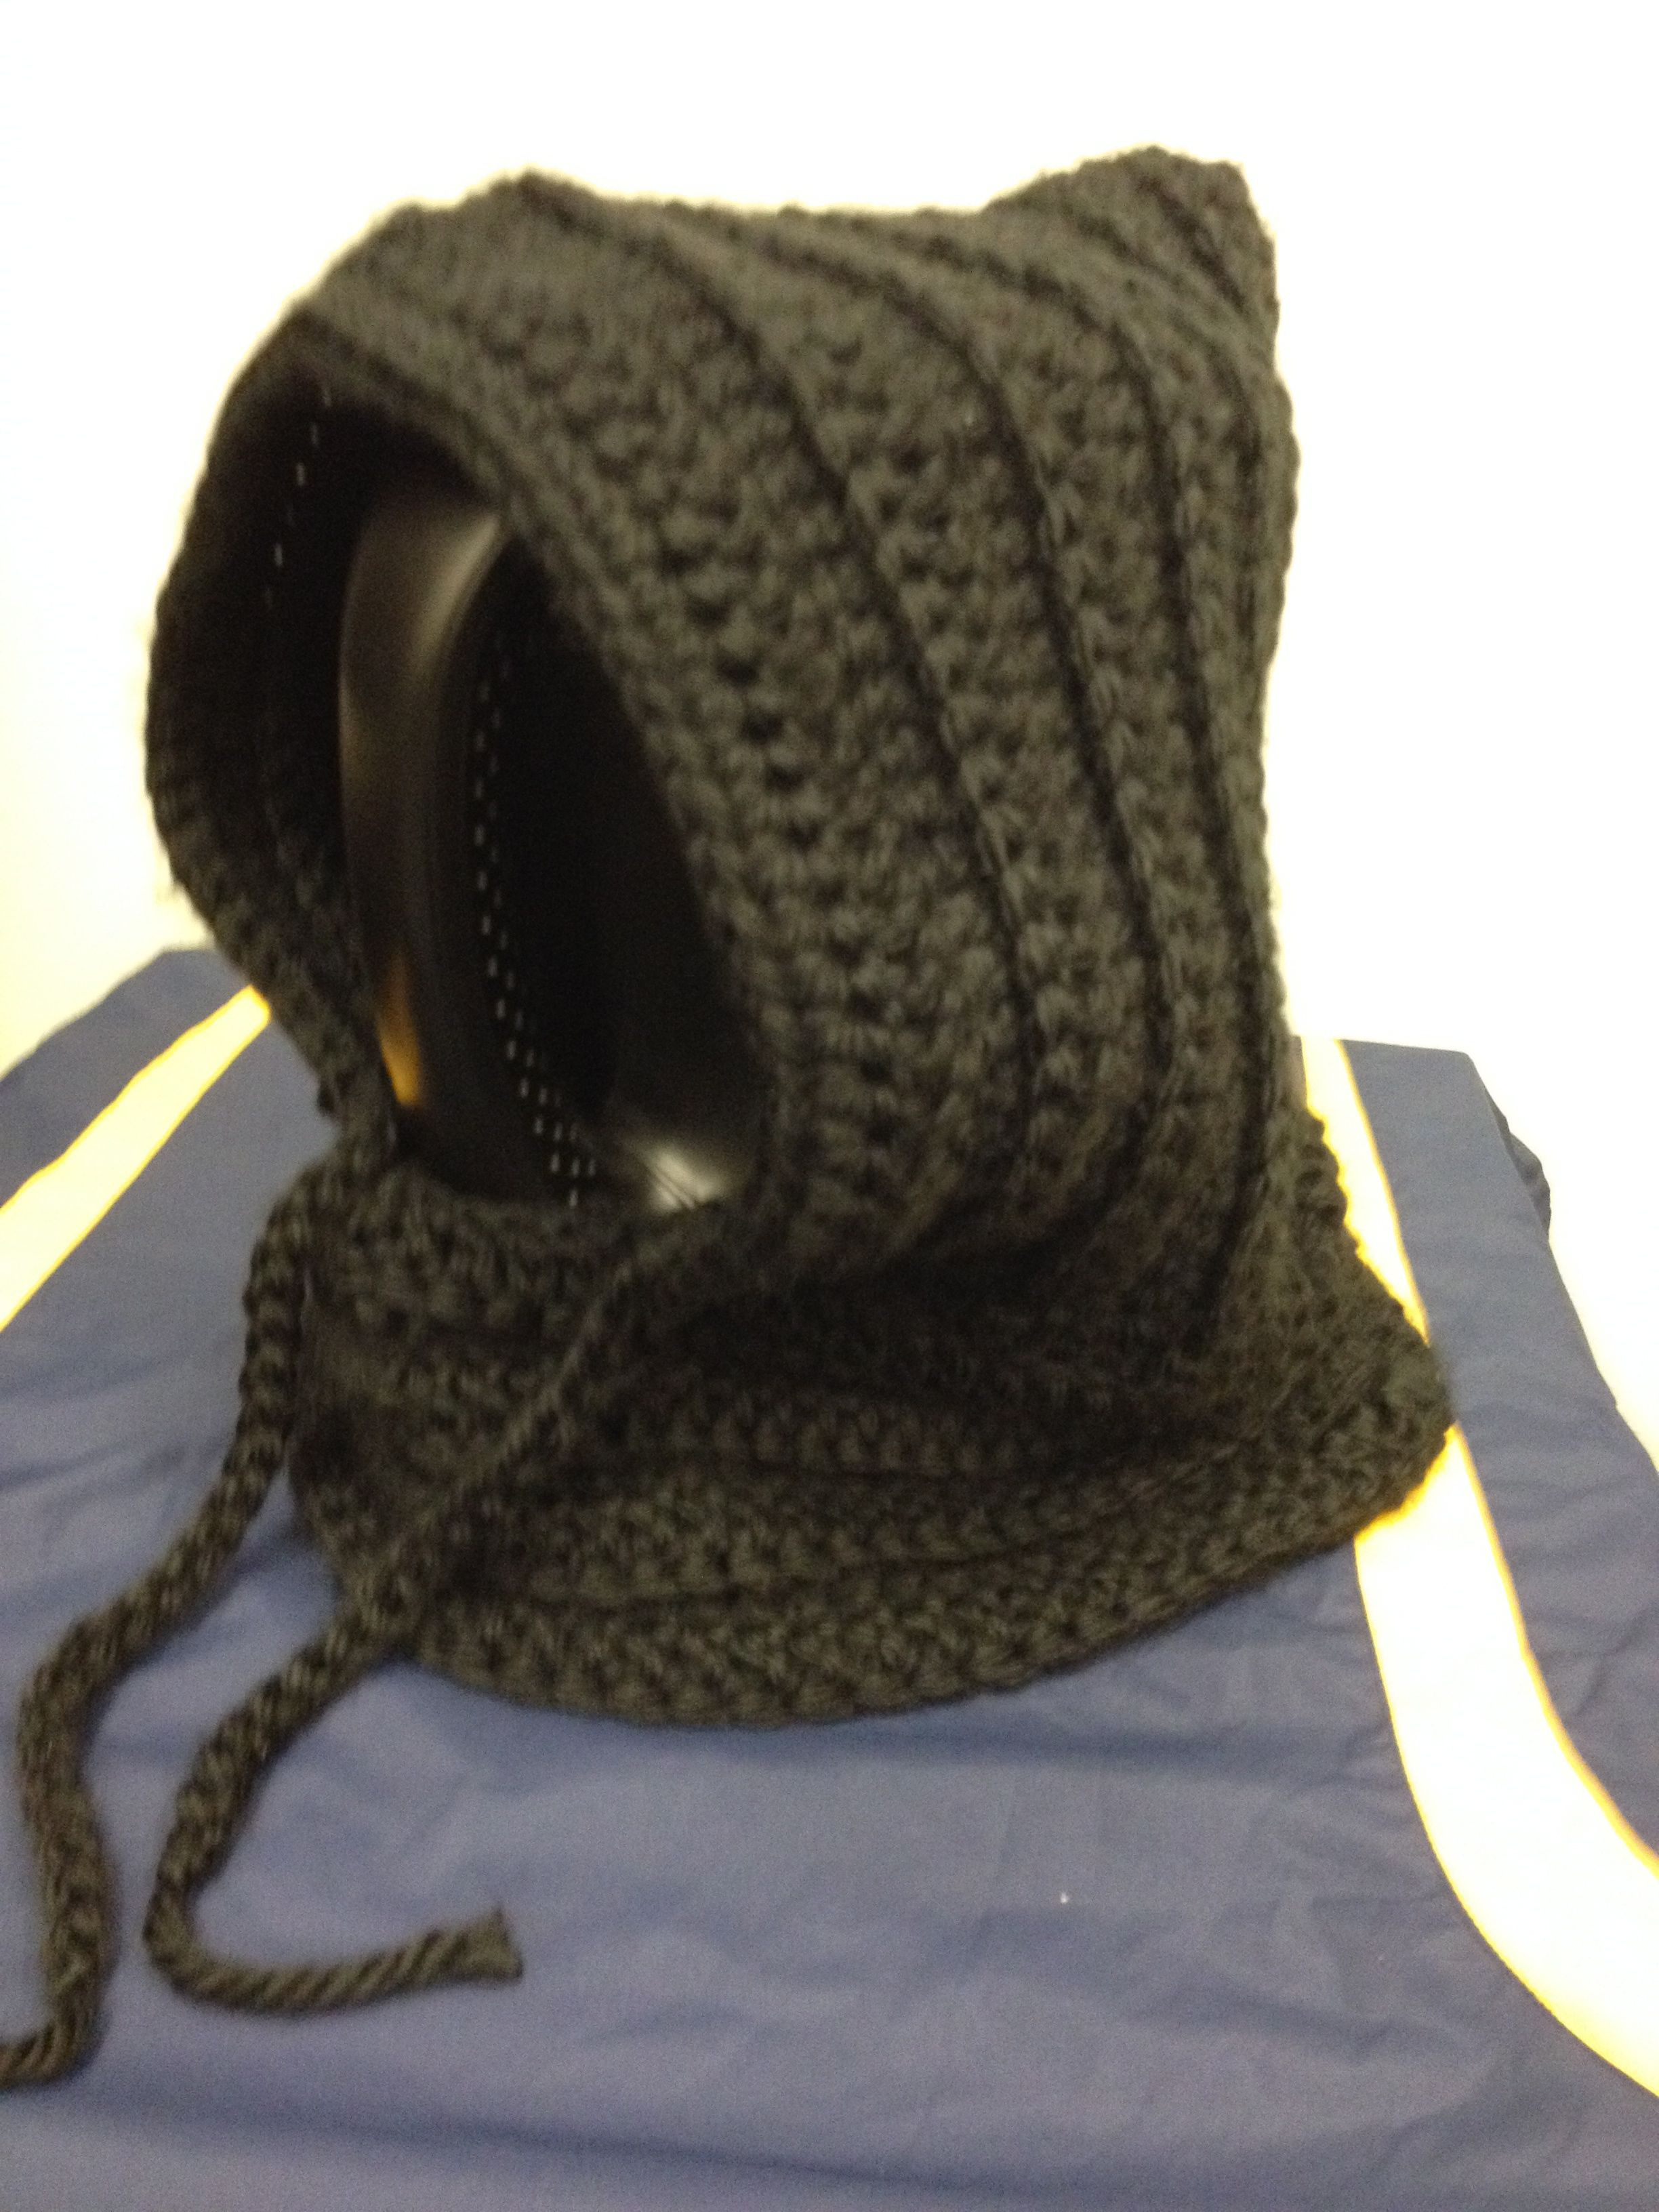 Hooded neck warmer | Neck warmer, Winter hats, Knitted scarf